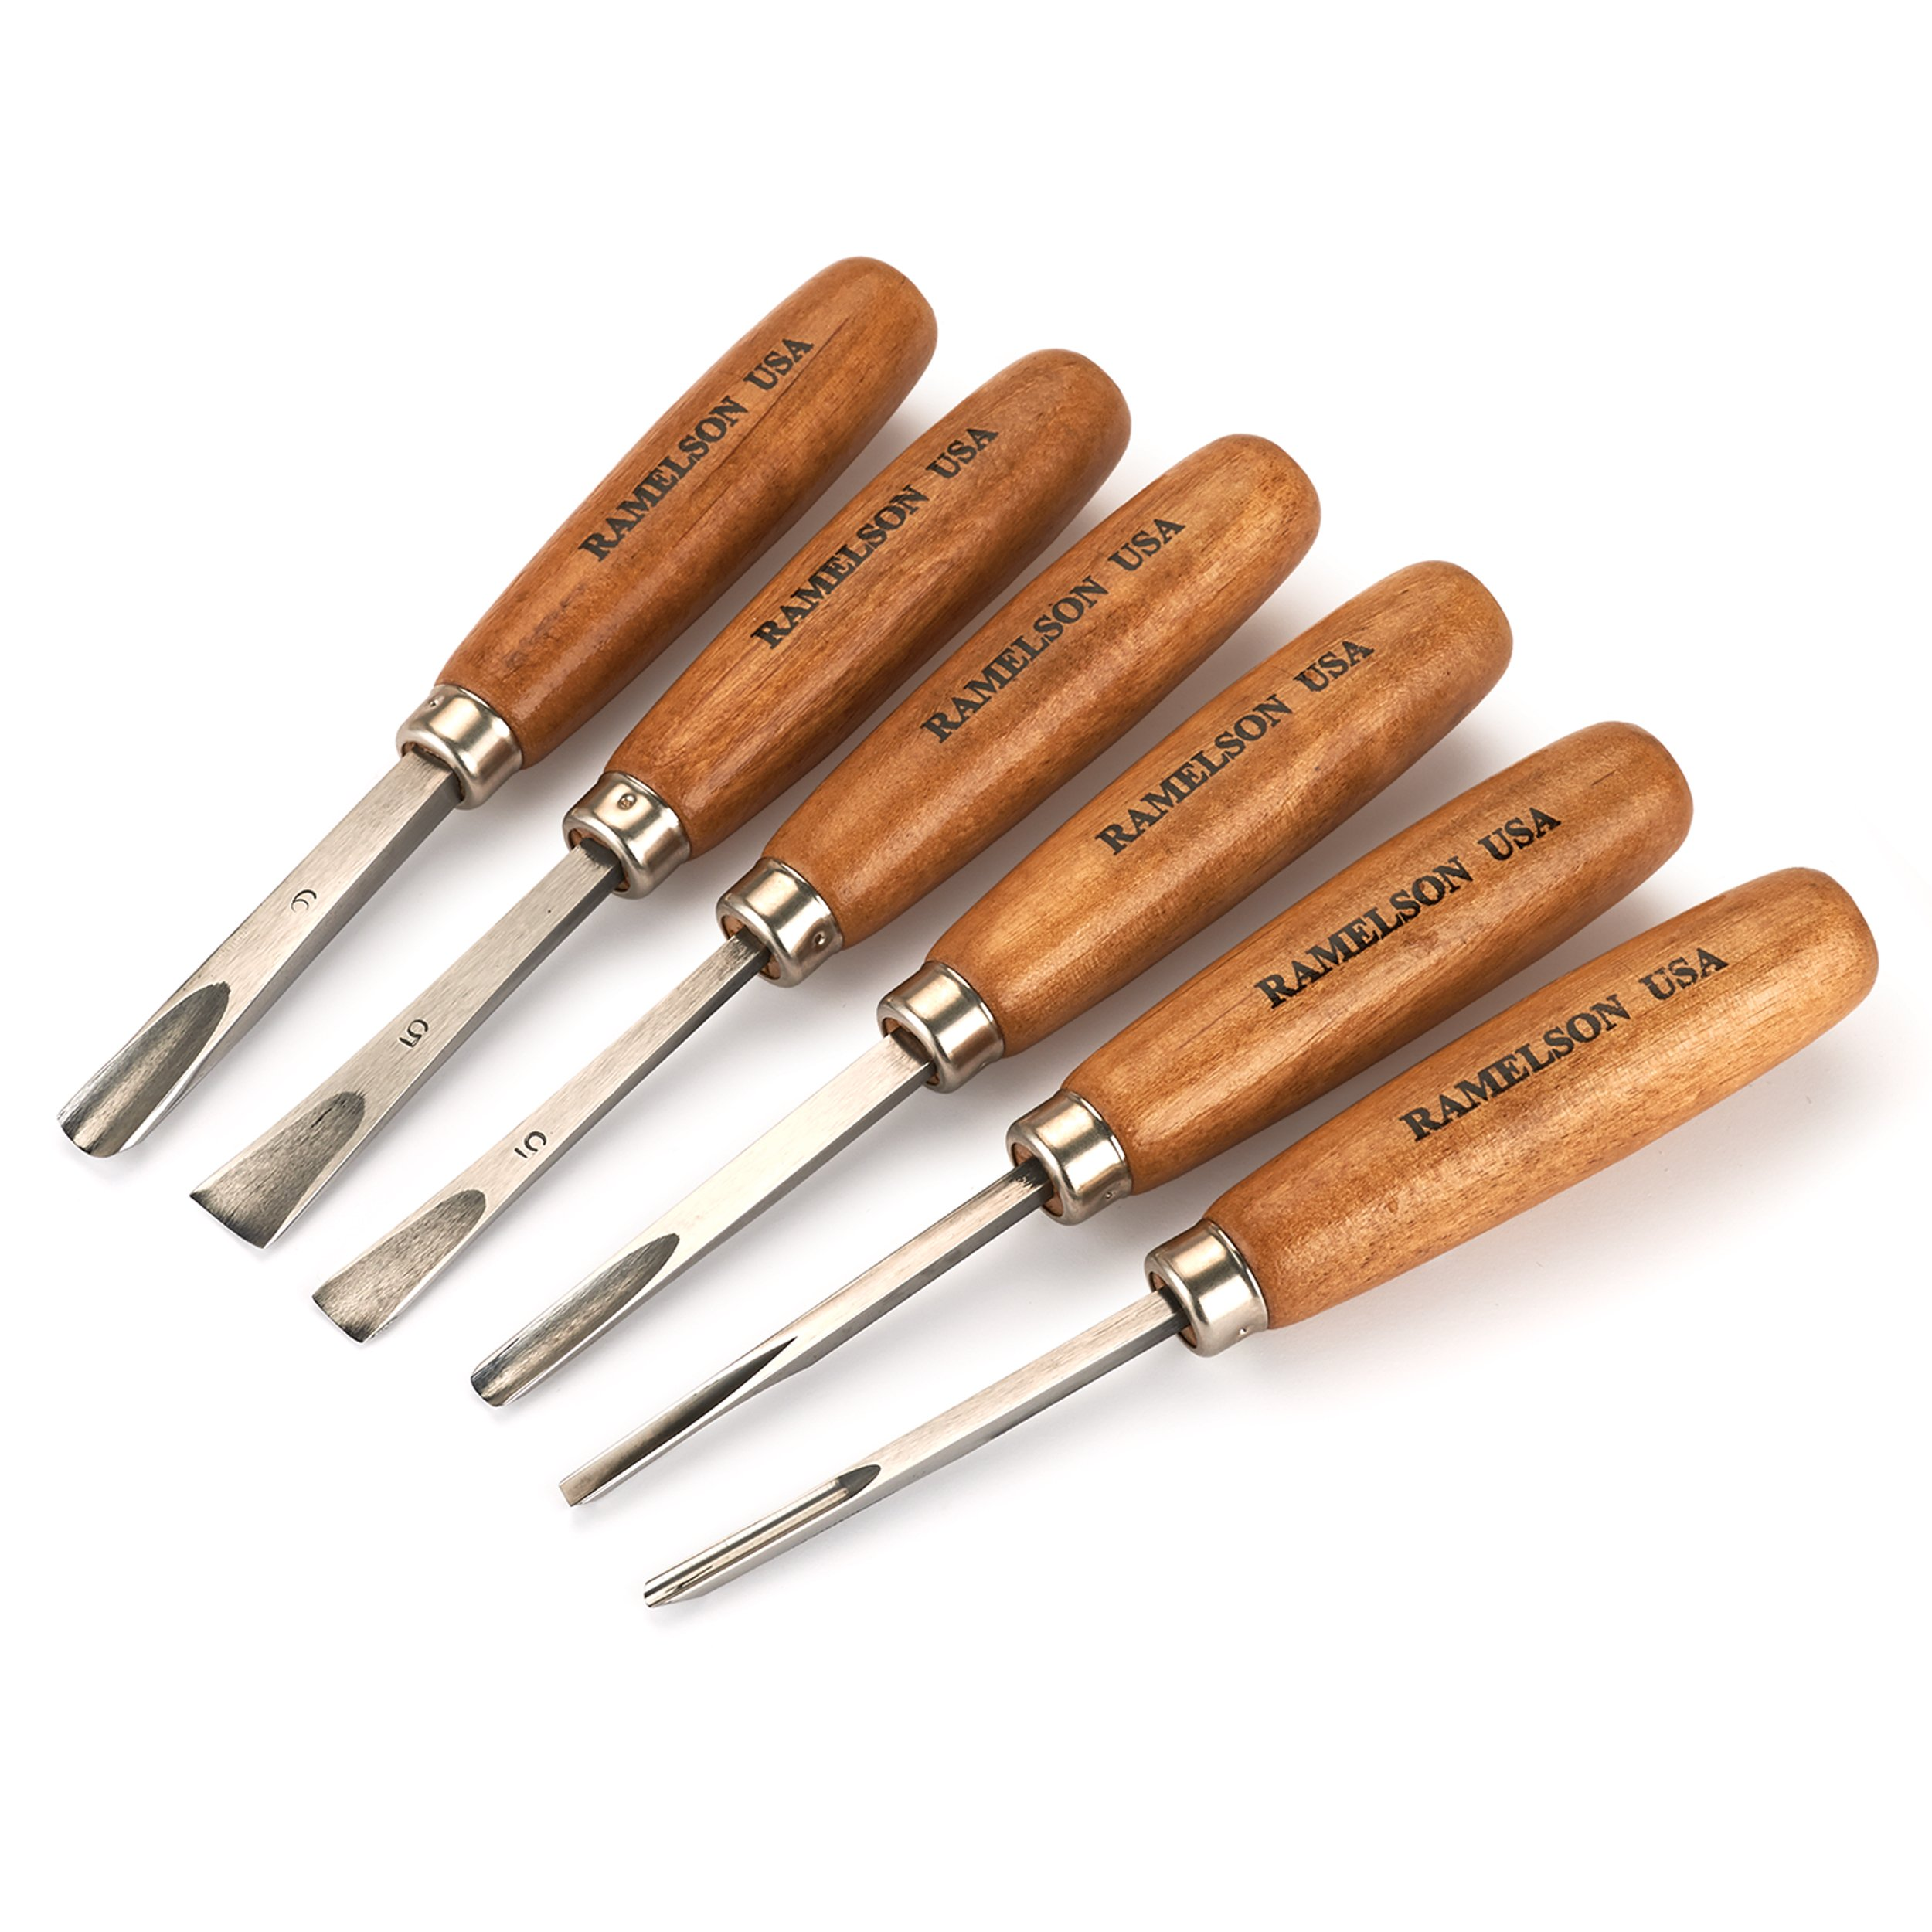 Ramelson Carving Set of 6 Tools